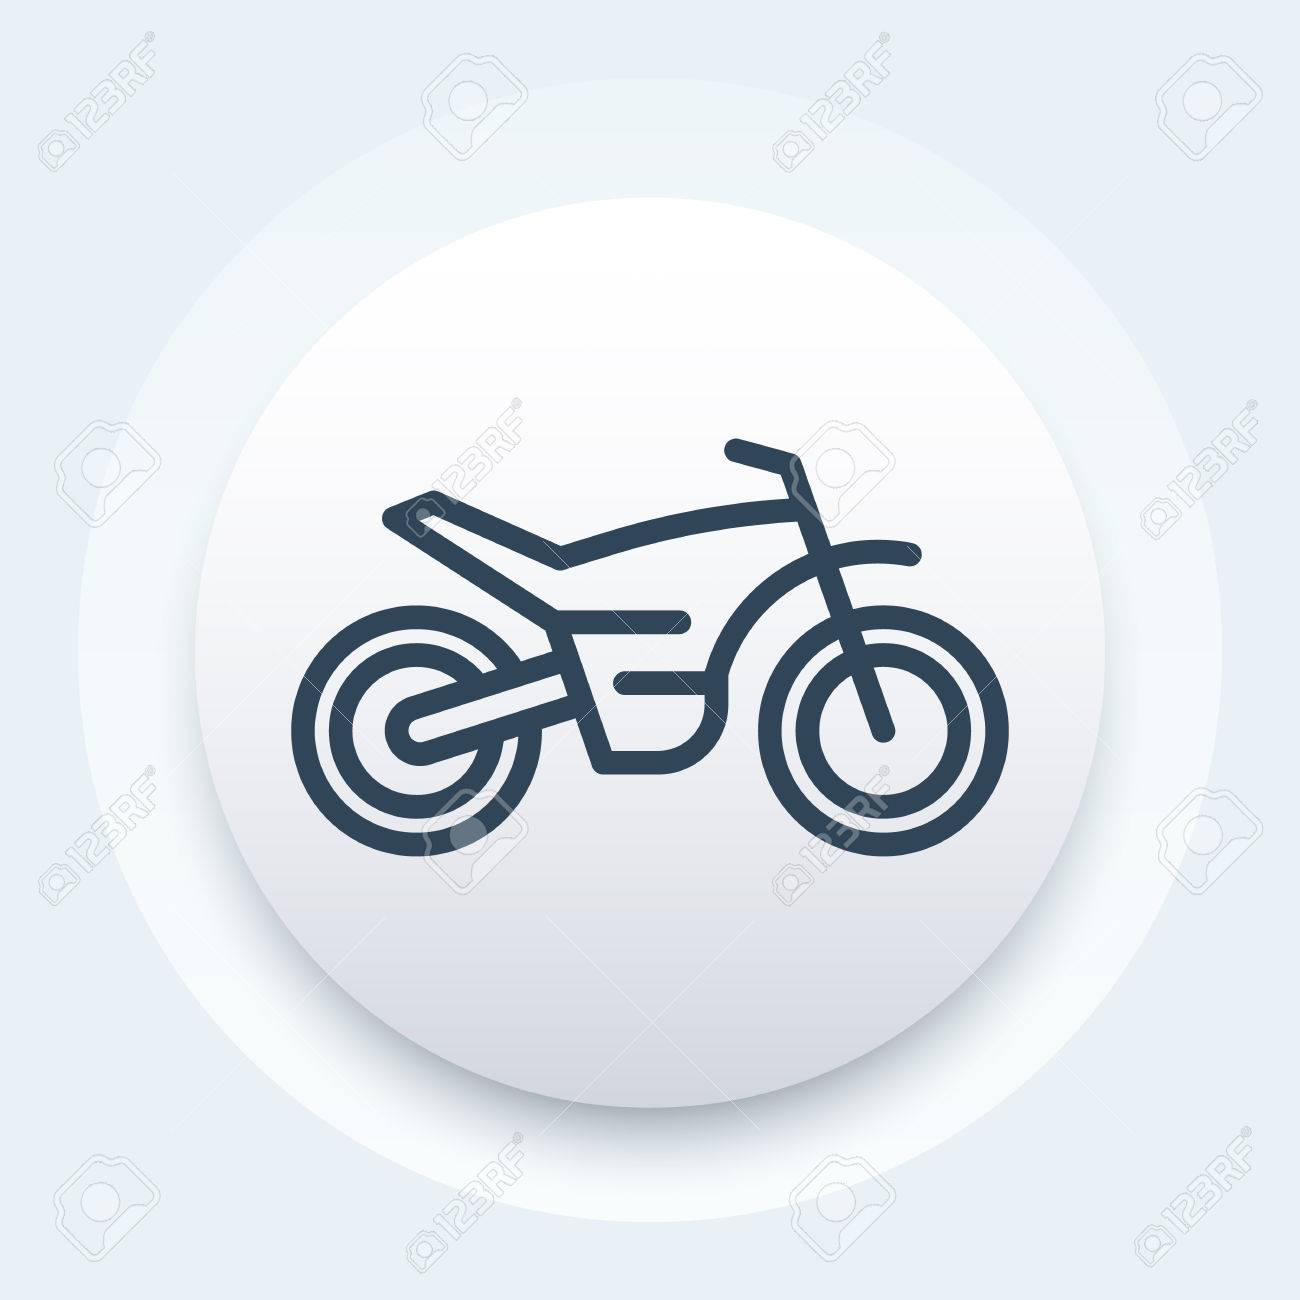 Offroad Bike Motorcycle Motocross Line Icon Vector Illustration Royalty Free Cliparts Vectors And Stock Illustration Image 69815070